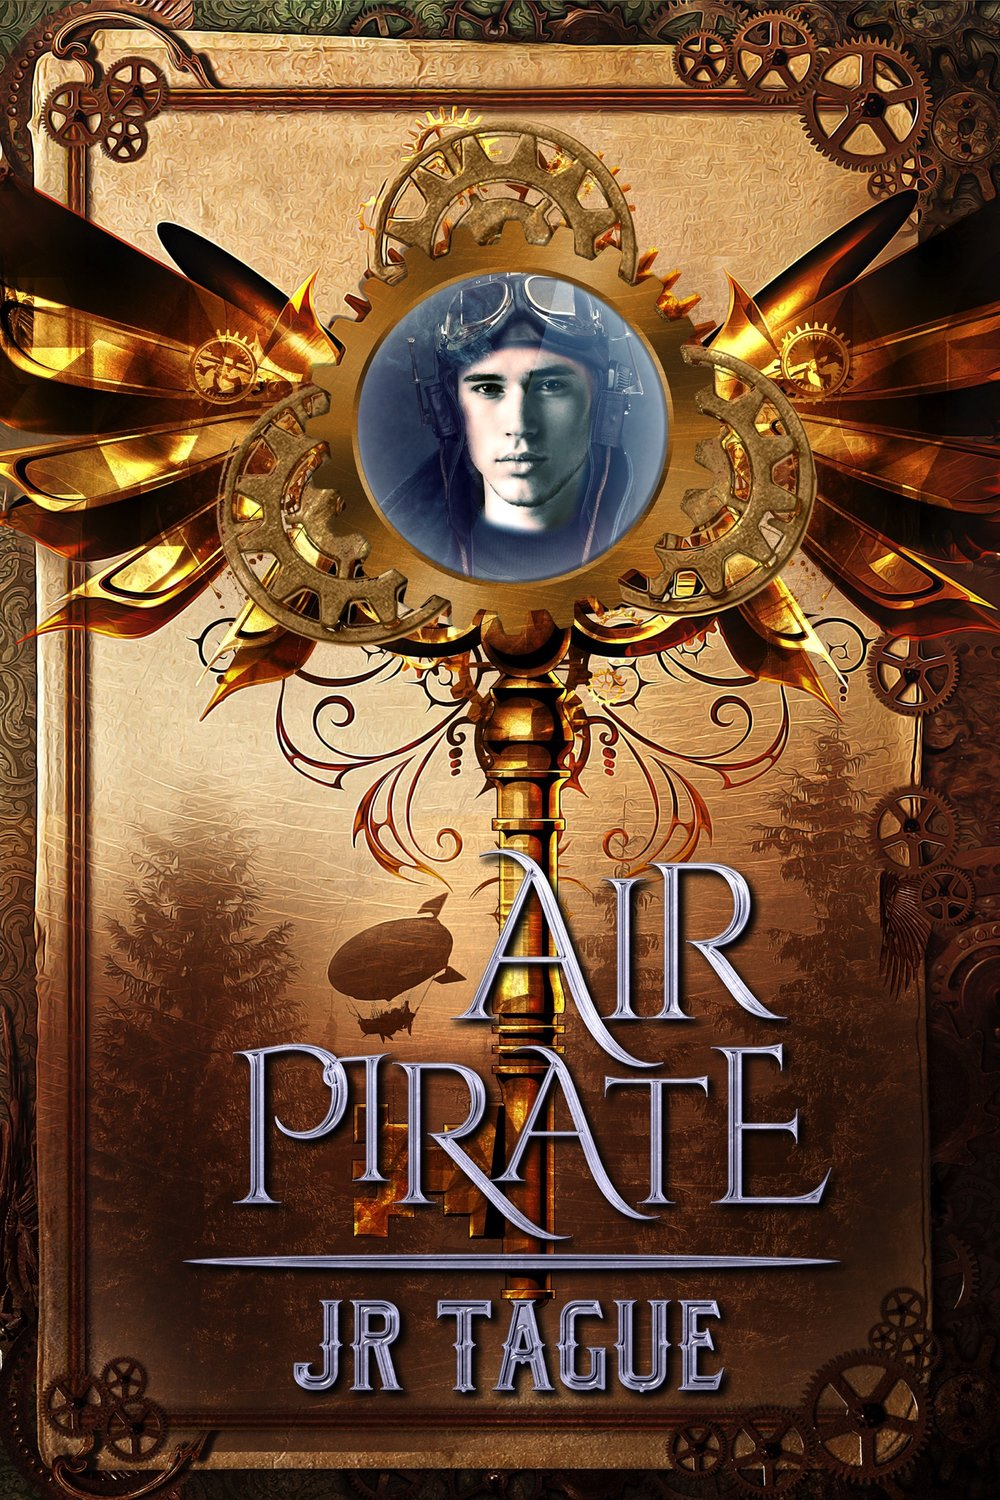 Air Pirate (Book One) - Townsman thief-for-hire, Darien North, survives a crash landing when his airship explodes over hostile Woodsman territory. He even manages to ingratiate himself to members of the tribe that finds him, including a beautiful girl with wild hair and deadly archery skills. For the first time in his life, Darien starts to feel at home. But his happiness is cut short when the Town's commissioner blackmails him into stealing a secret heirloom from the Woodsman tribes. After years of being a loner, Darien is forced to choose between competing loyalties: friends or family, woods or town. And when he learns of an old, deadly weapon that could put all of humanity at risk, he must decide what—or whom—he's willing to sacrifice to save them all.